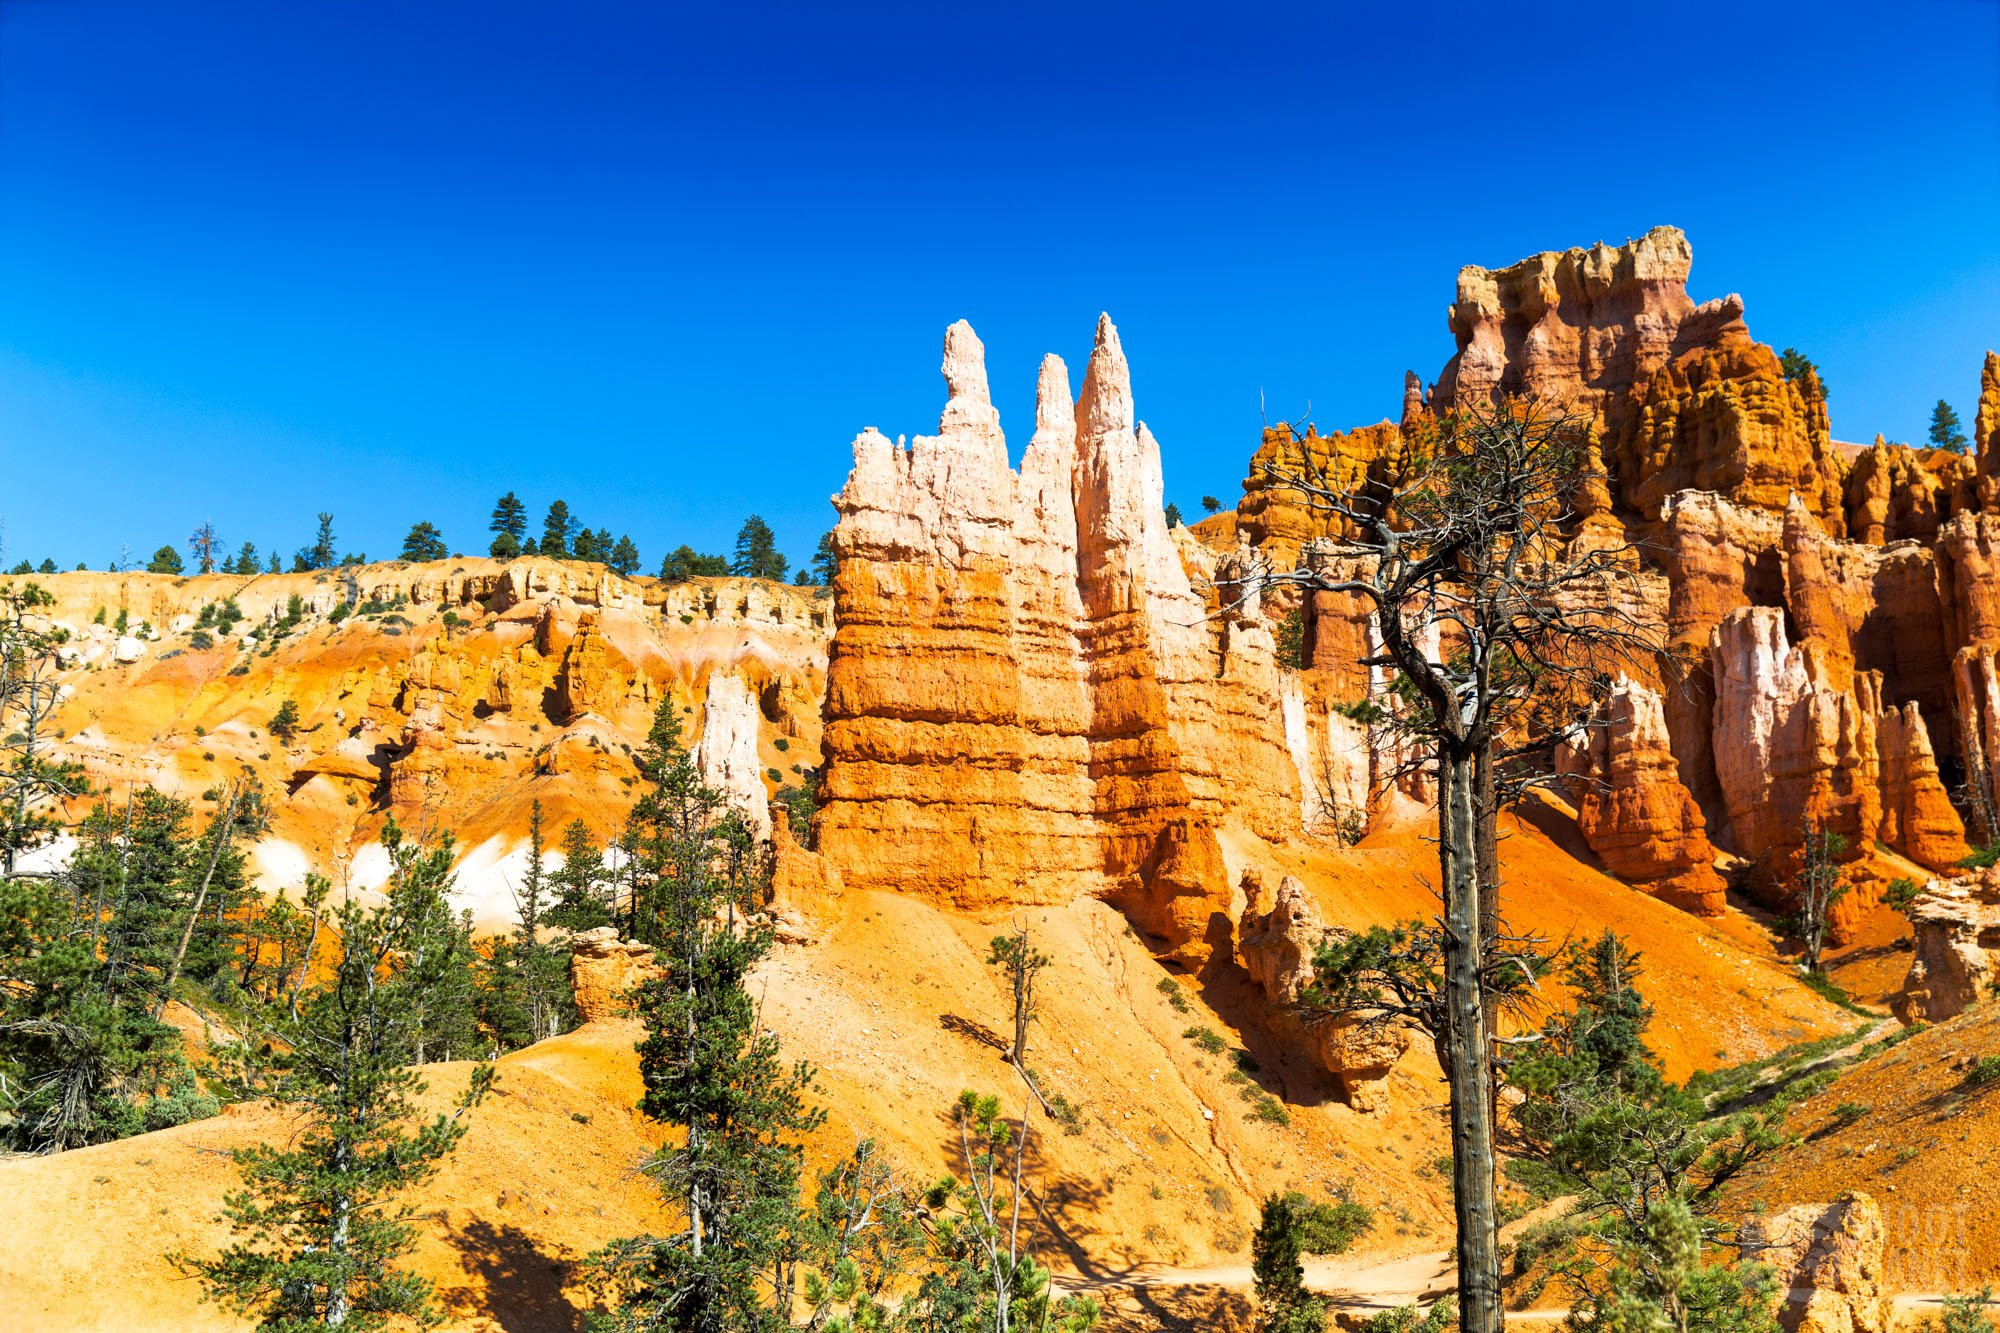 Queens Garden trail, Bryce Canyon, USA